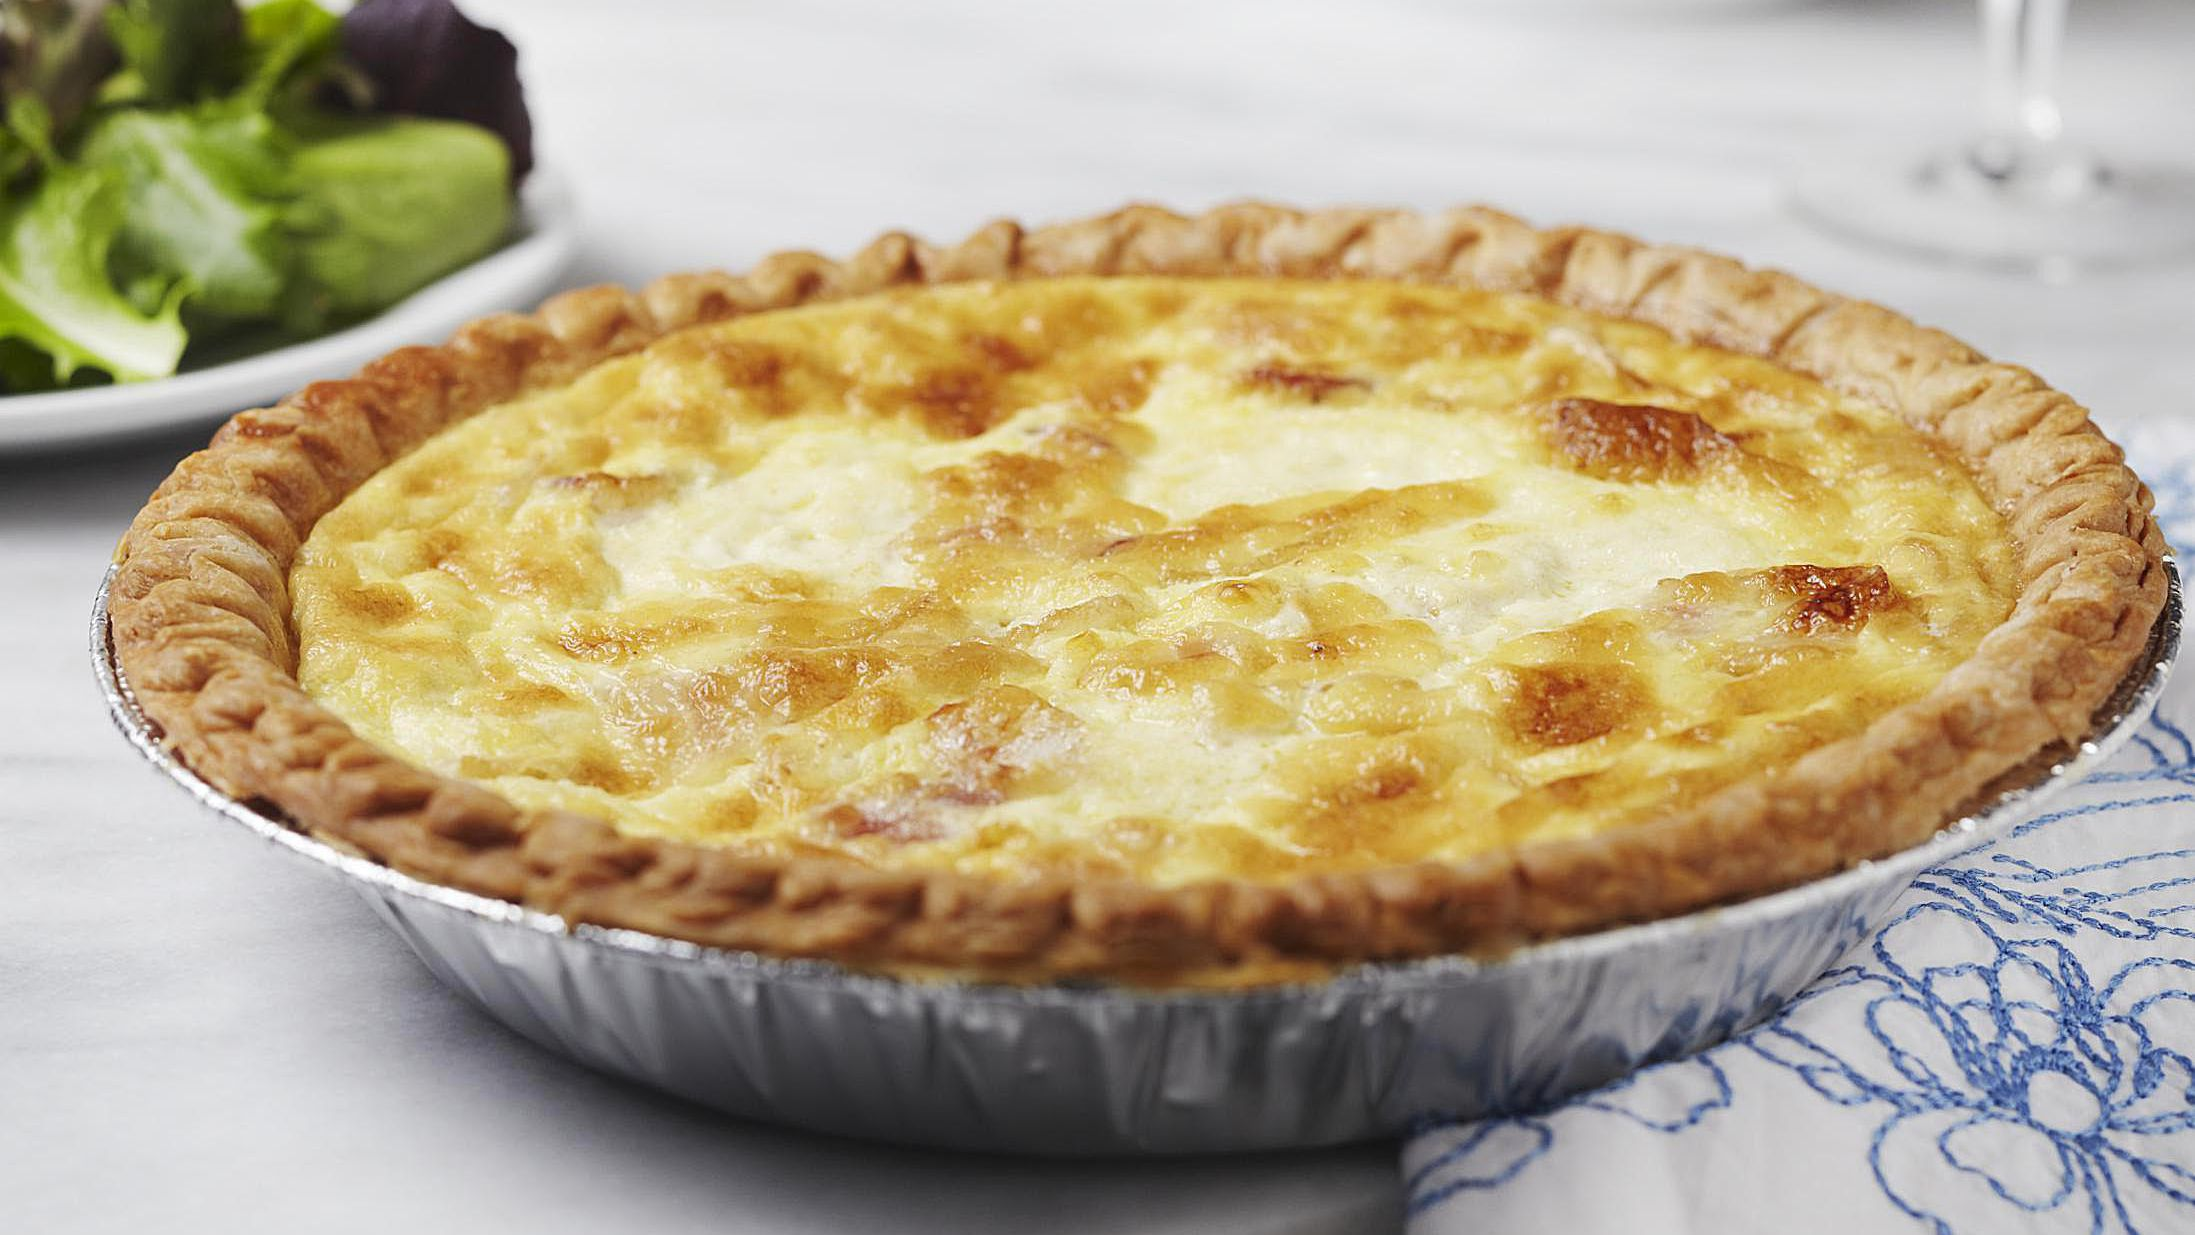 Quiche Lorraine is an Easy and Classic